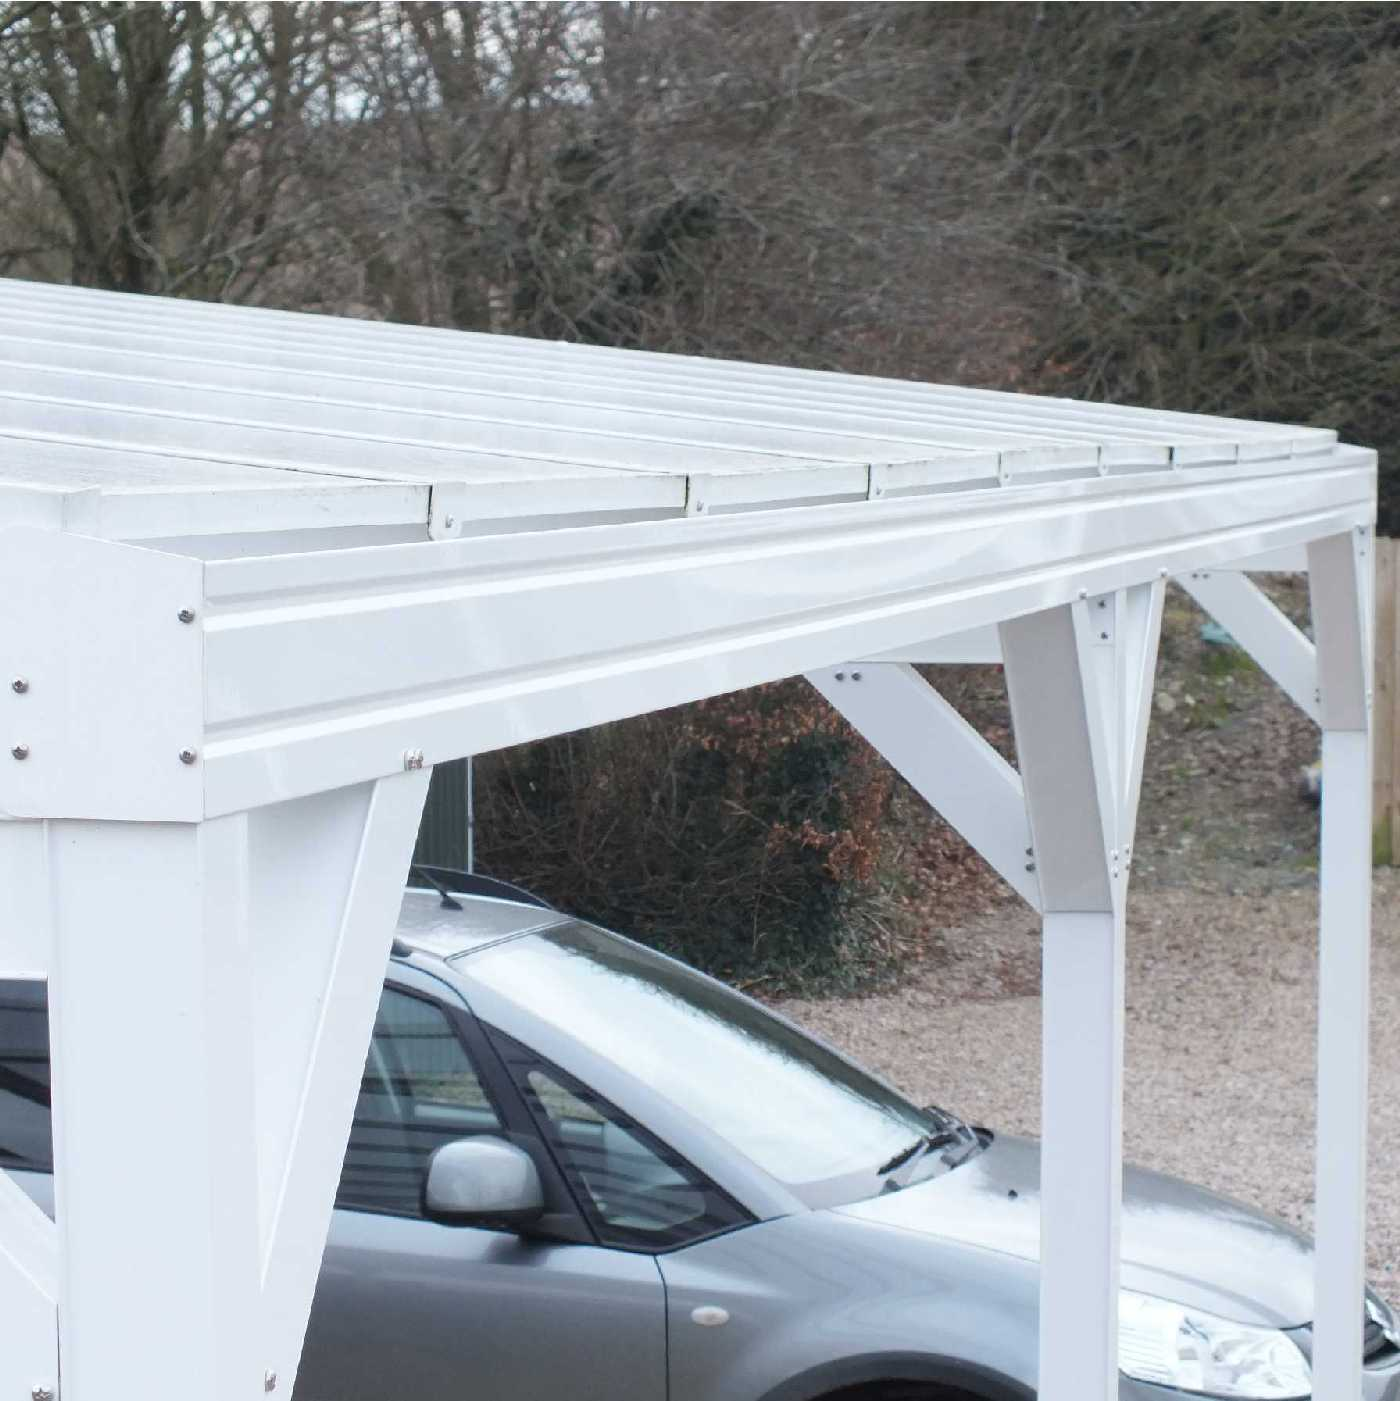 Omega Smart Free-Standing, MonoPitch Roof Canopy with 16mm Polycarbonate Glazing - 5.2m (W) x 3.0m (P), (6) Supporting Posts from Omega Build